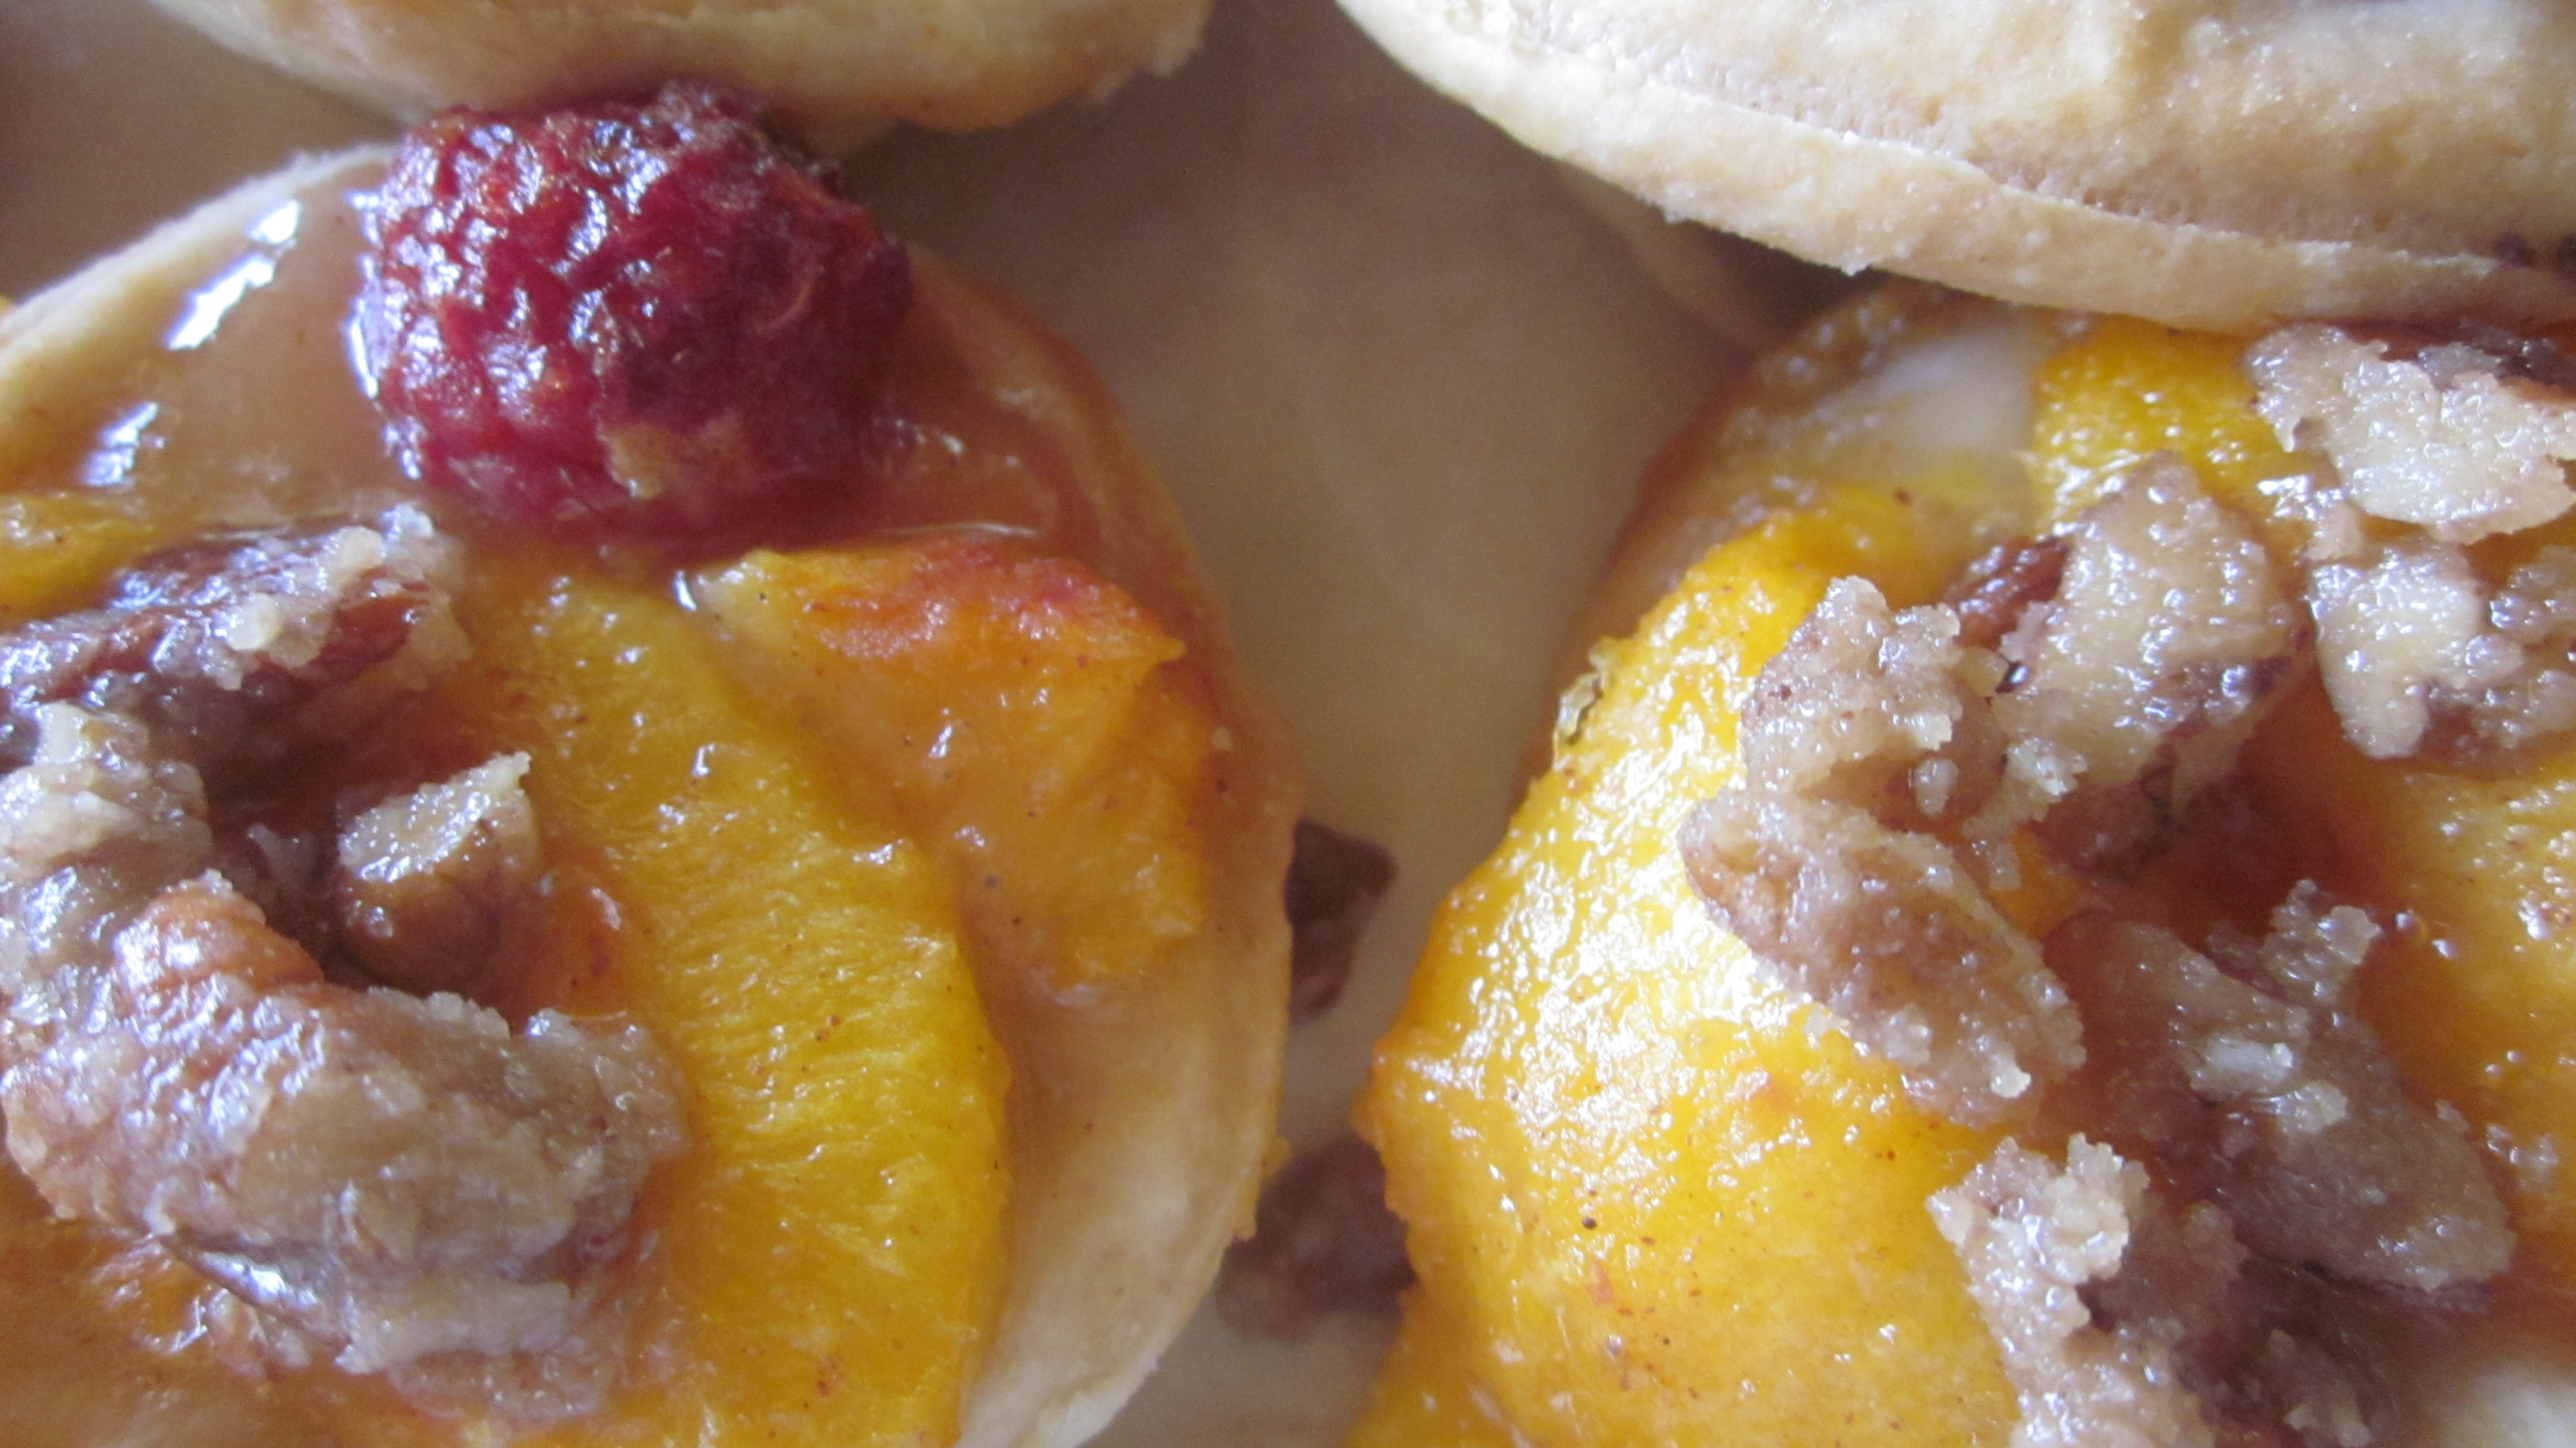 Peach and Raspberry Tartlets with candied pecans, oh my!